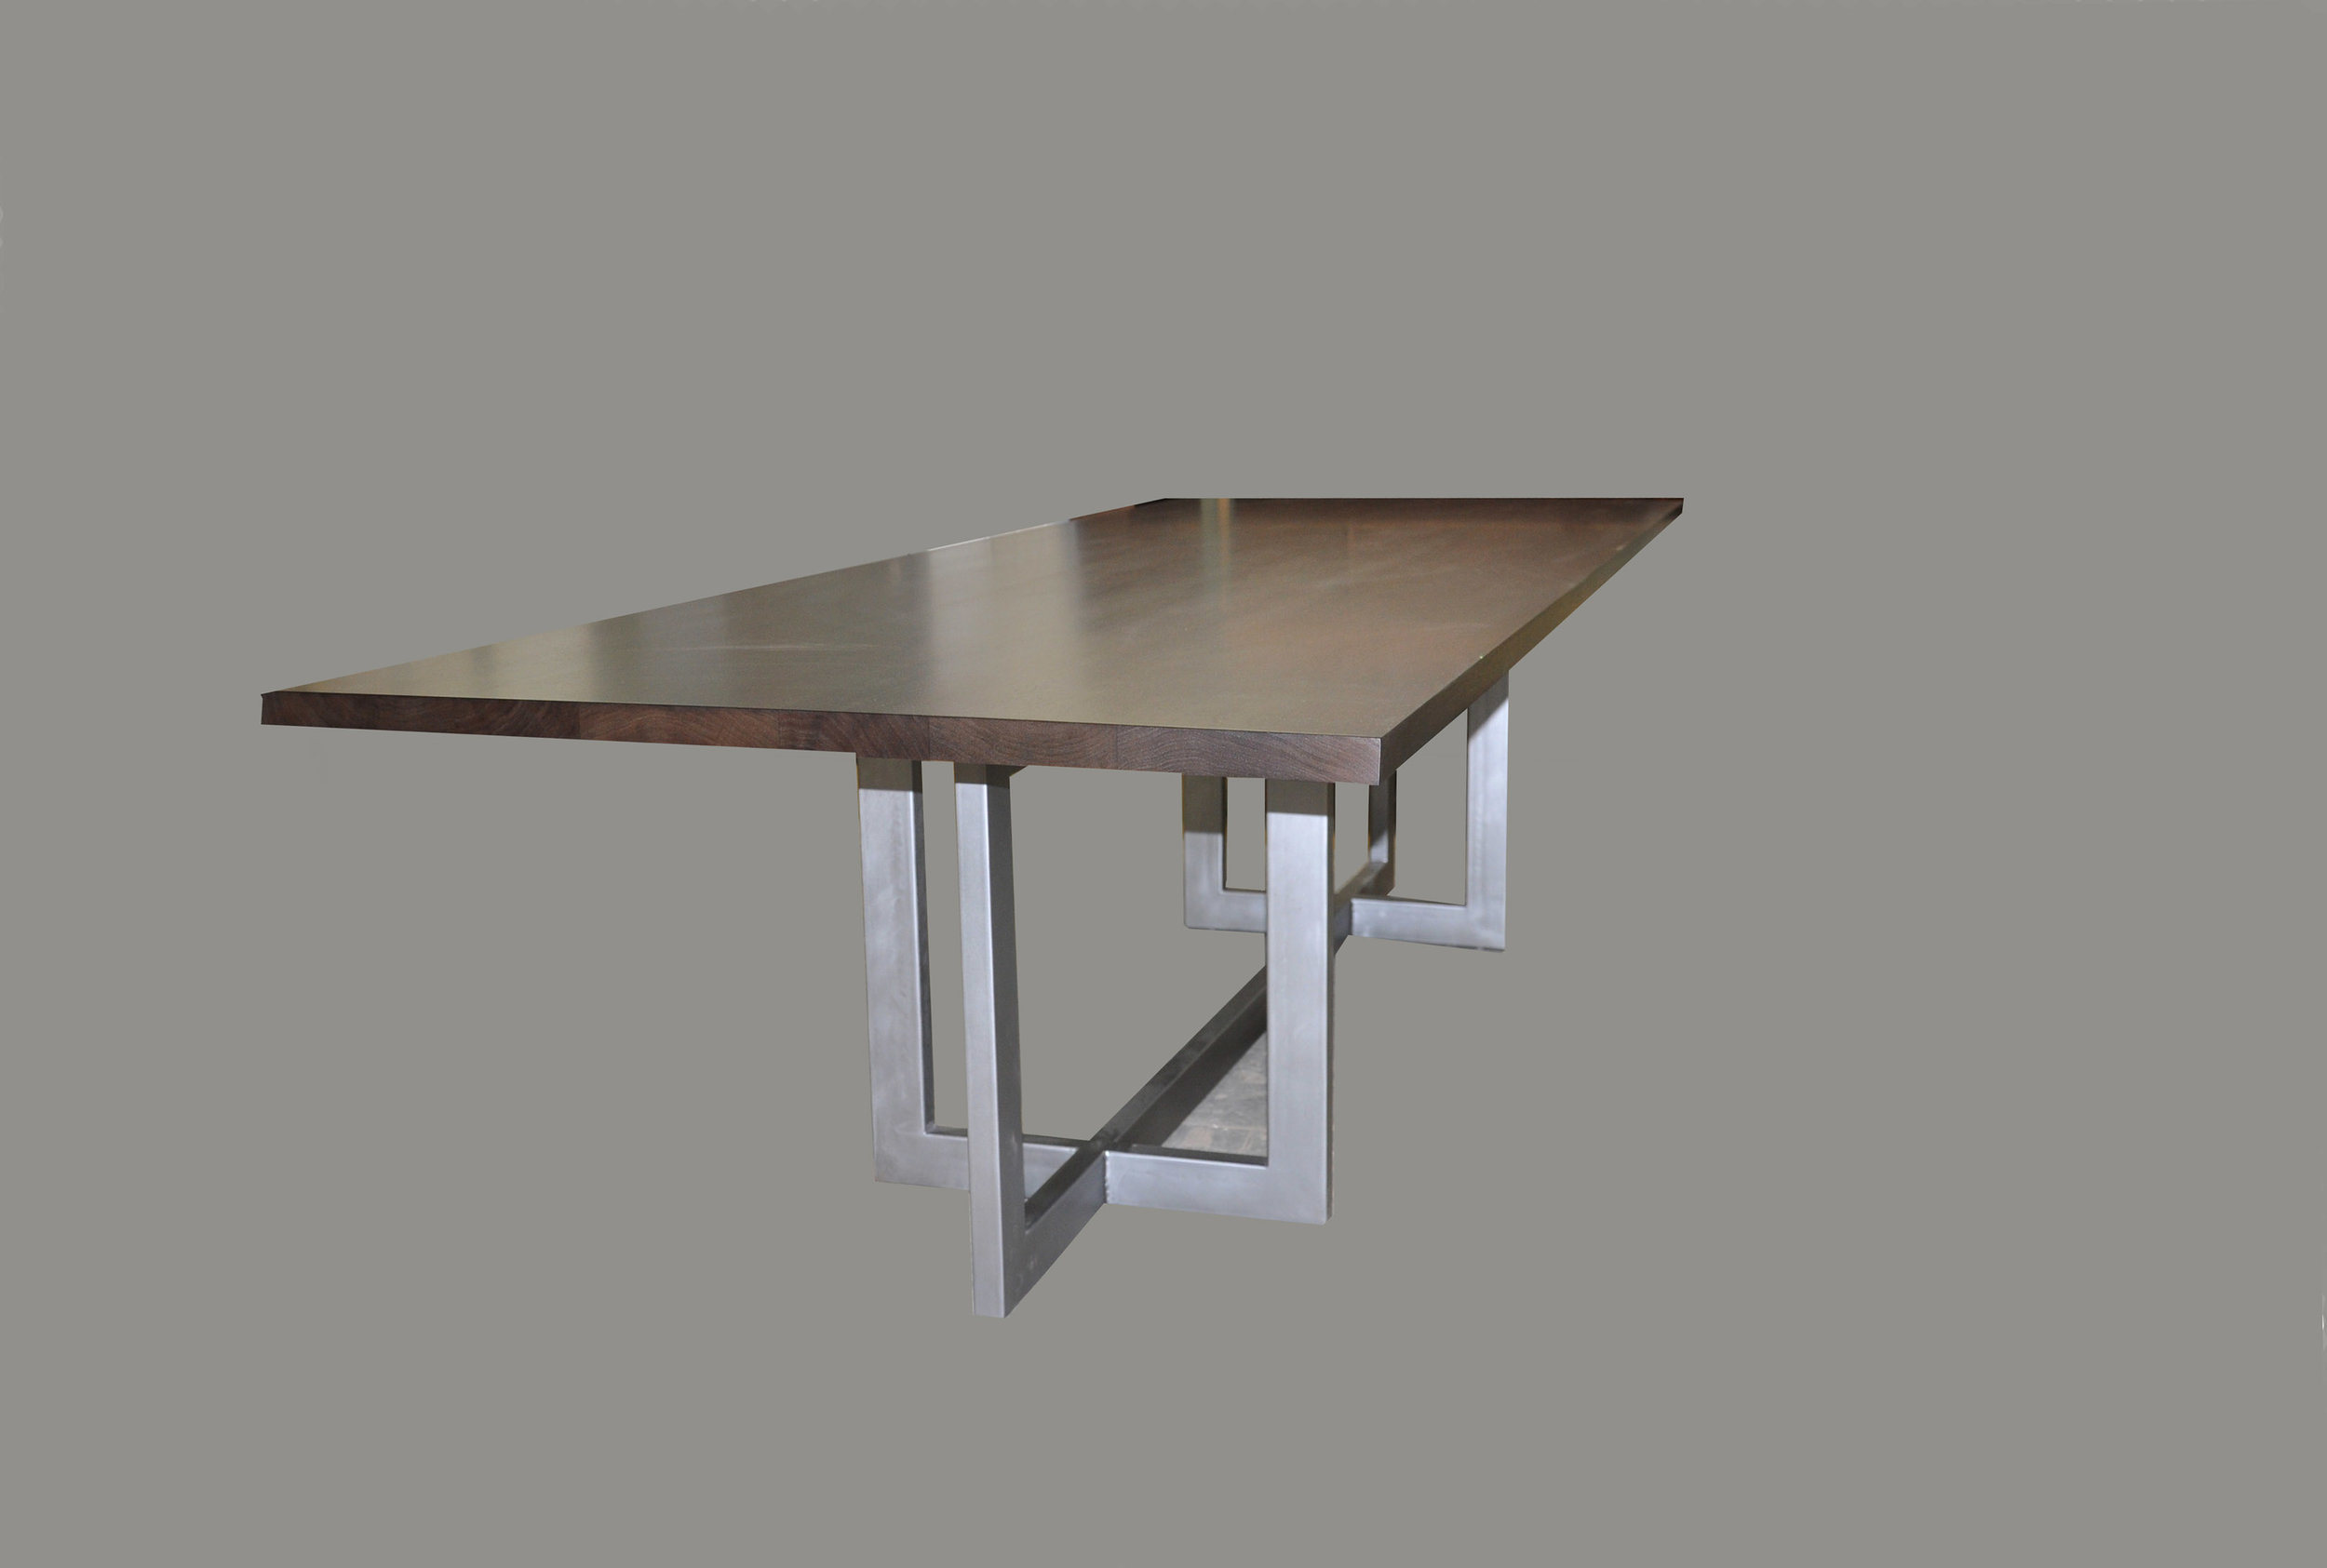 Steel Interlock Table Base